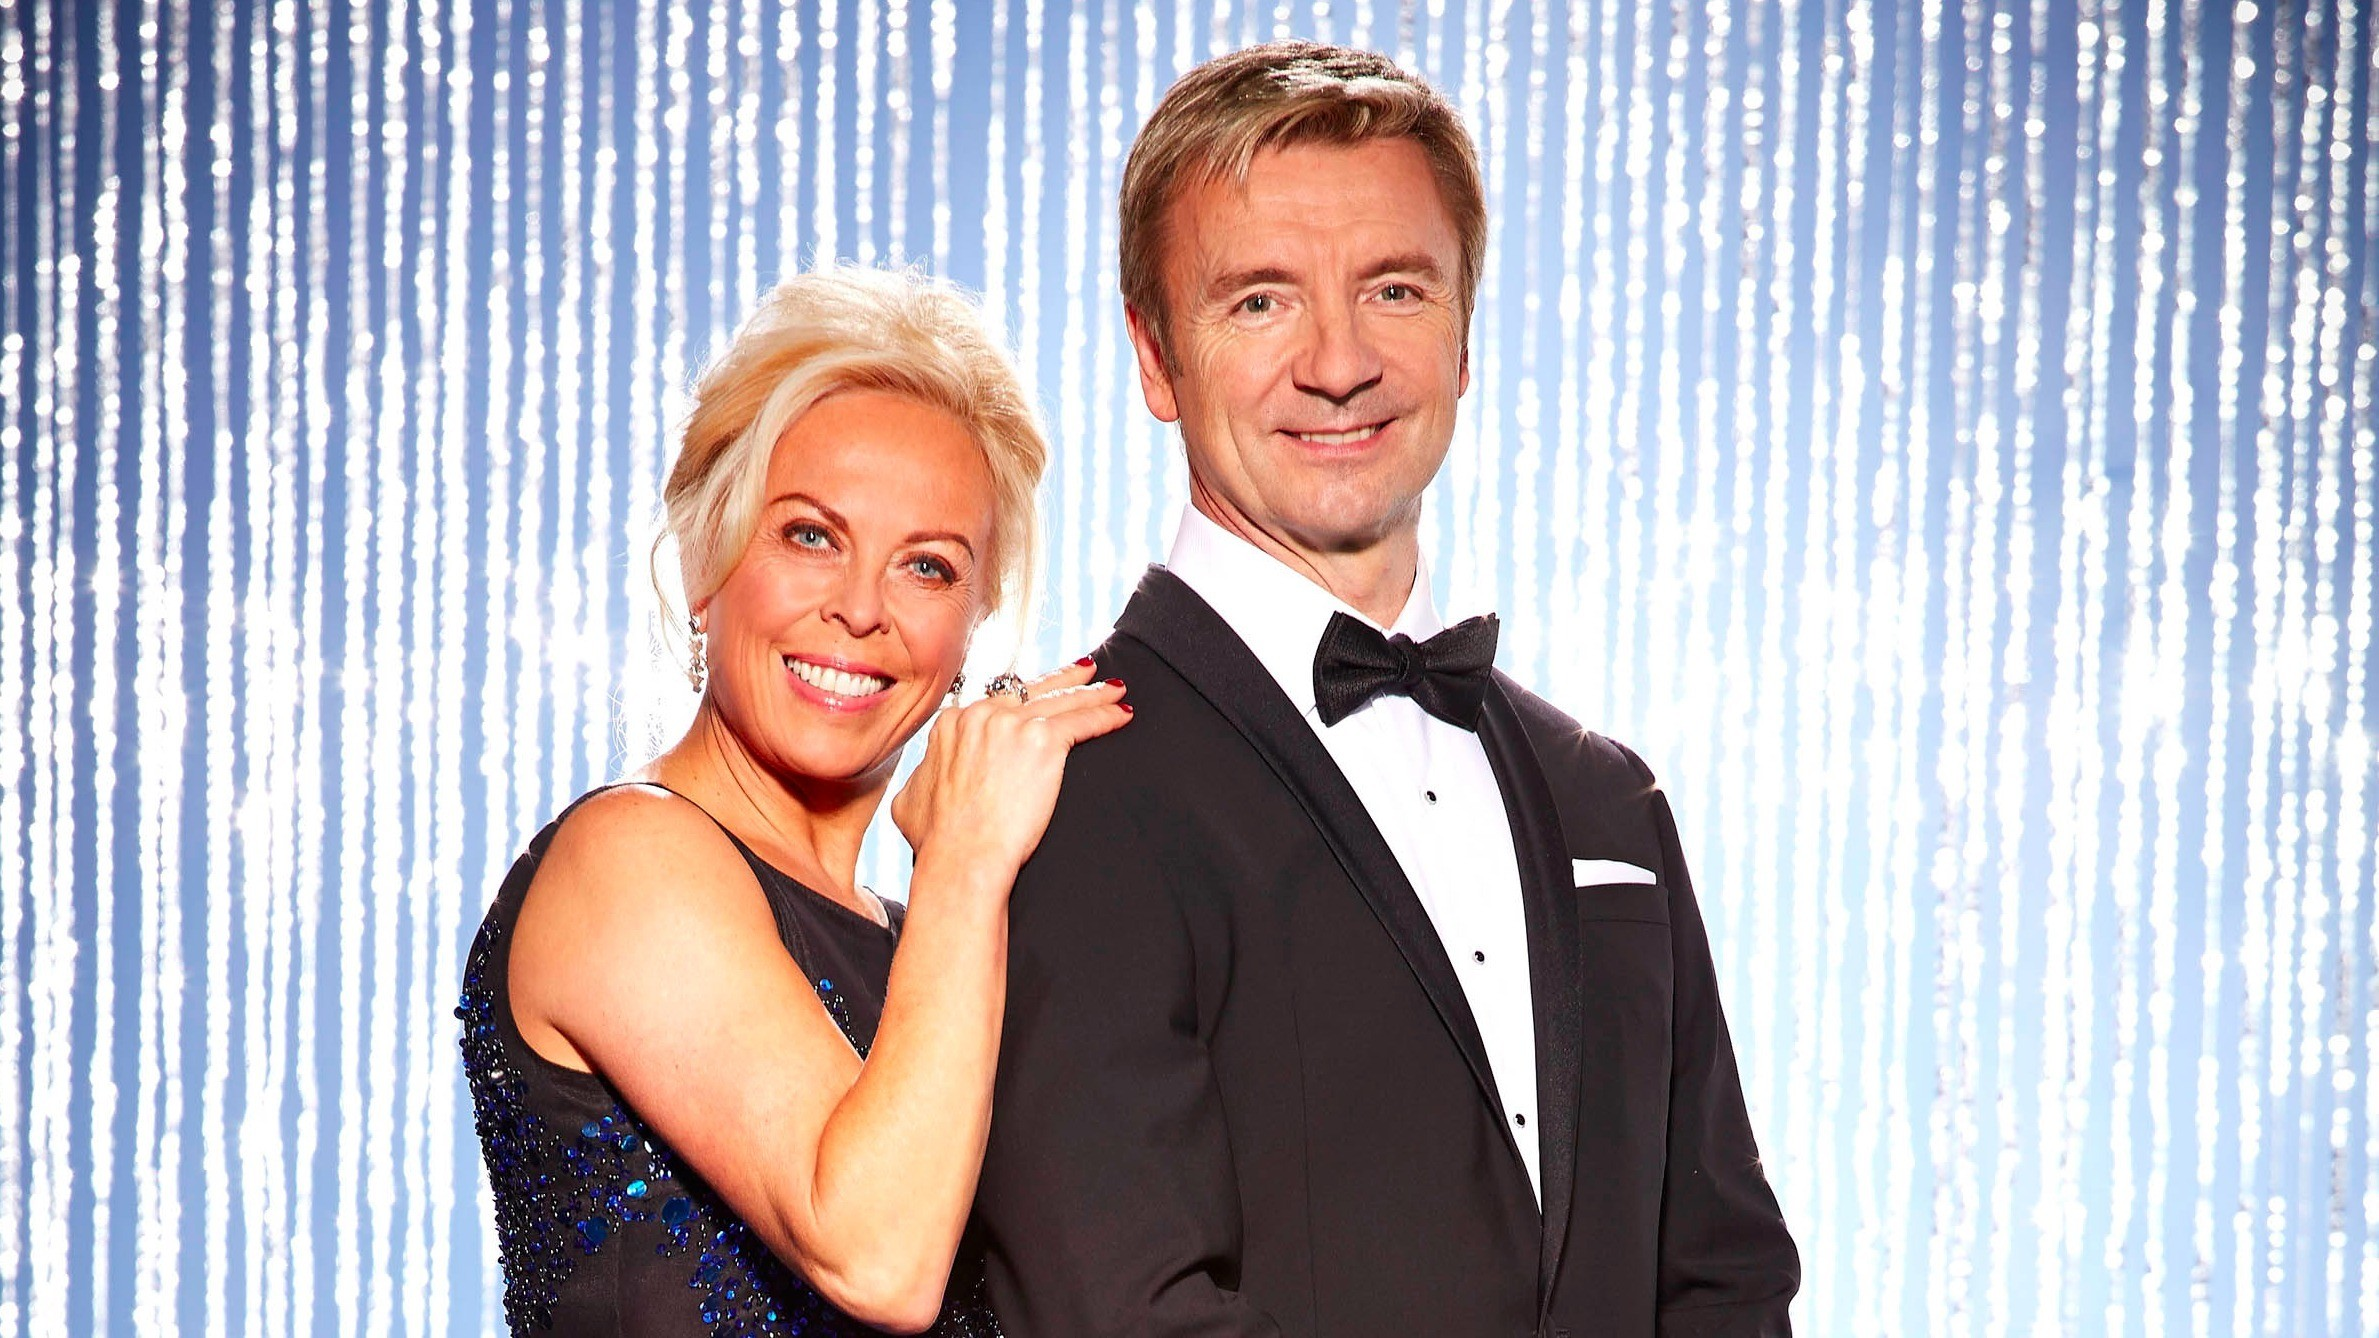 Ahead of Dancing On Ice 2018, what are Jayne Torvill and Christopher Dean worth?